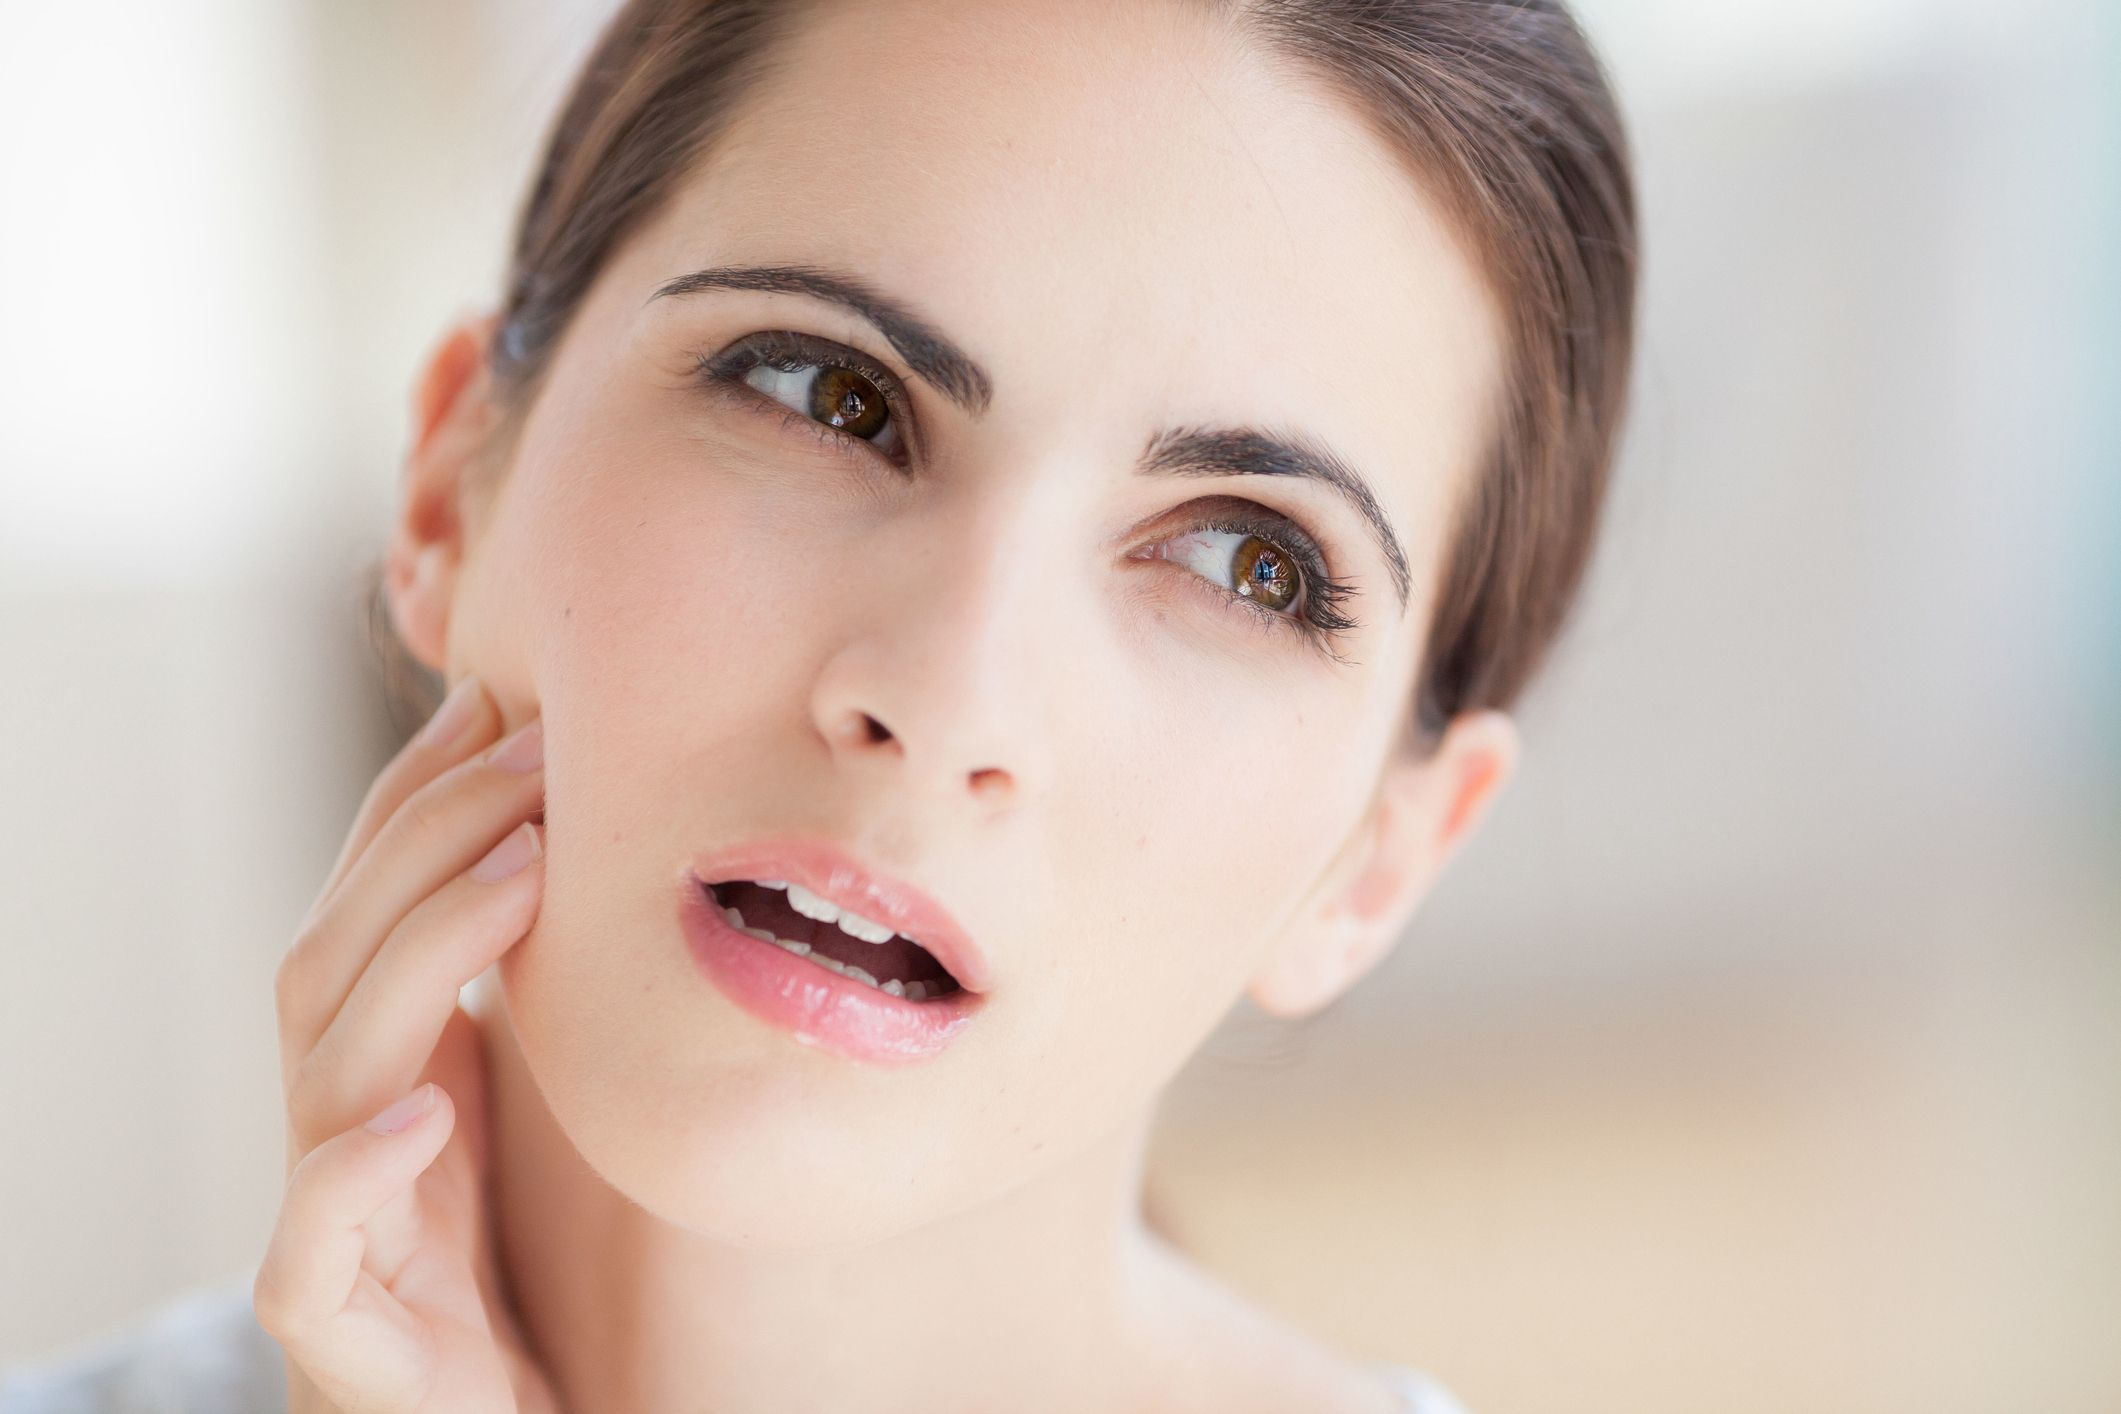 Phenomenal Tmj Jaw Surgery Is A Last Resort Find Out When It Is Right For You Wiring 101 Swasaxxcnl